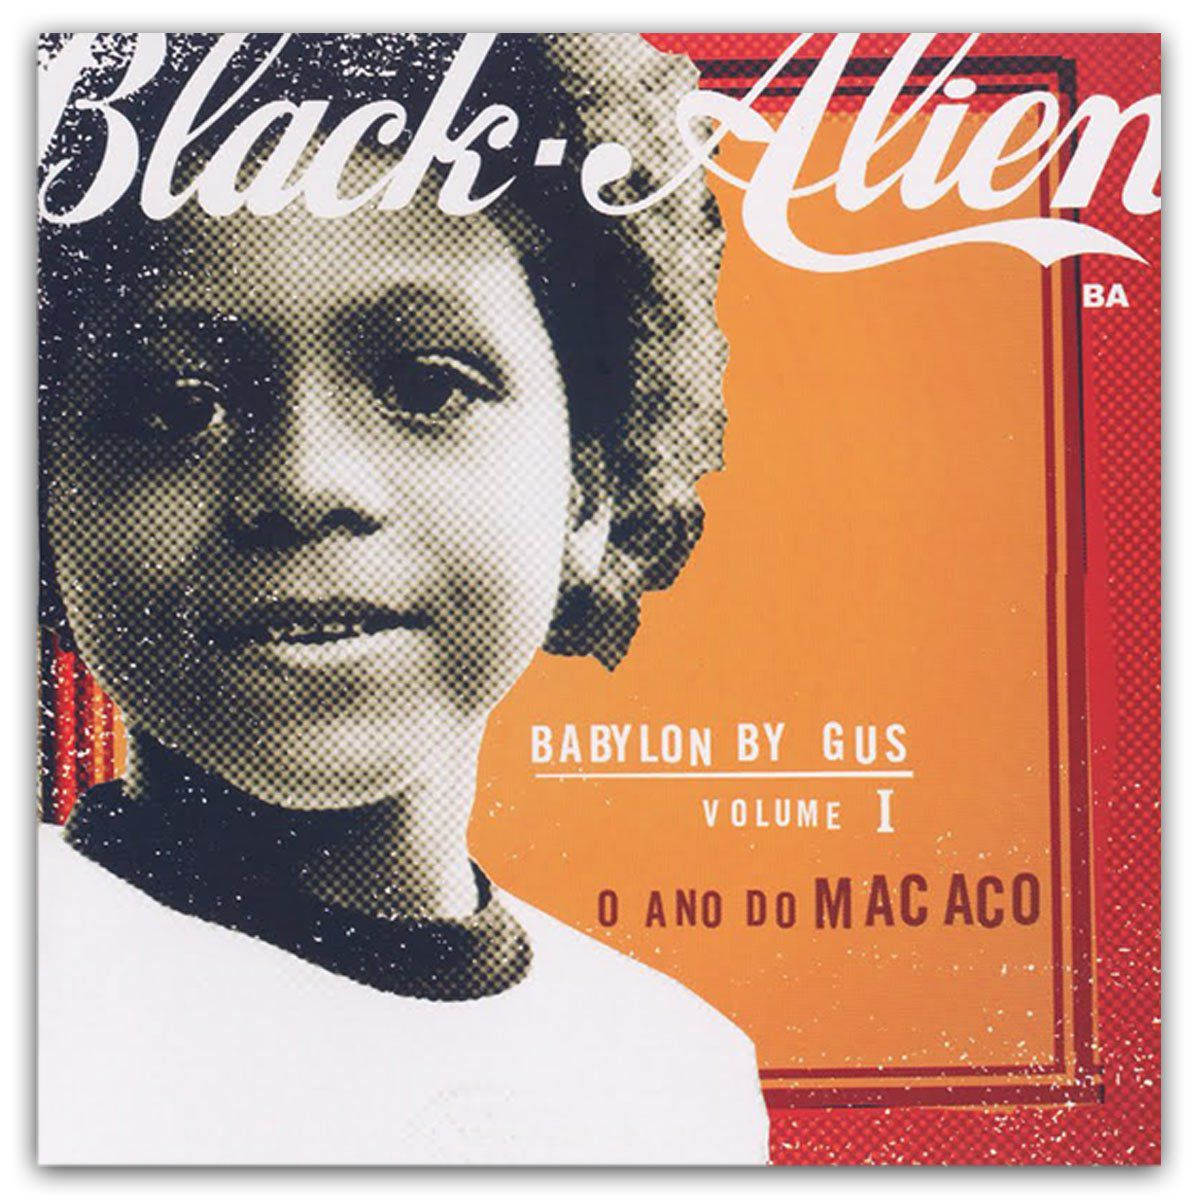 LP Black-Alien Babylon By Gus Volume 1 O Ano do Macaco  - bandUP Store Marketplace